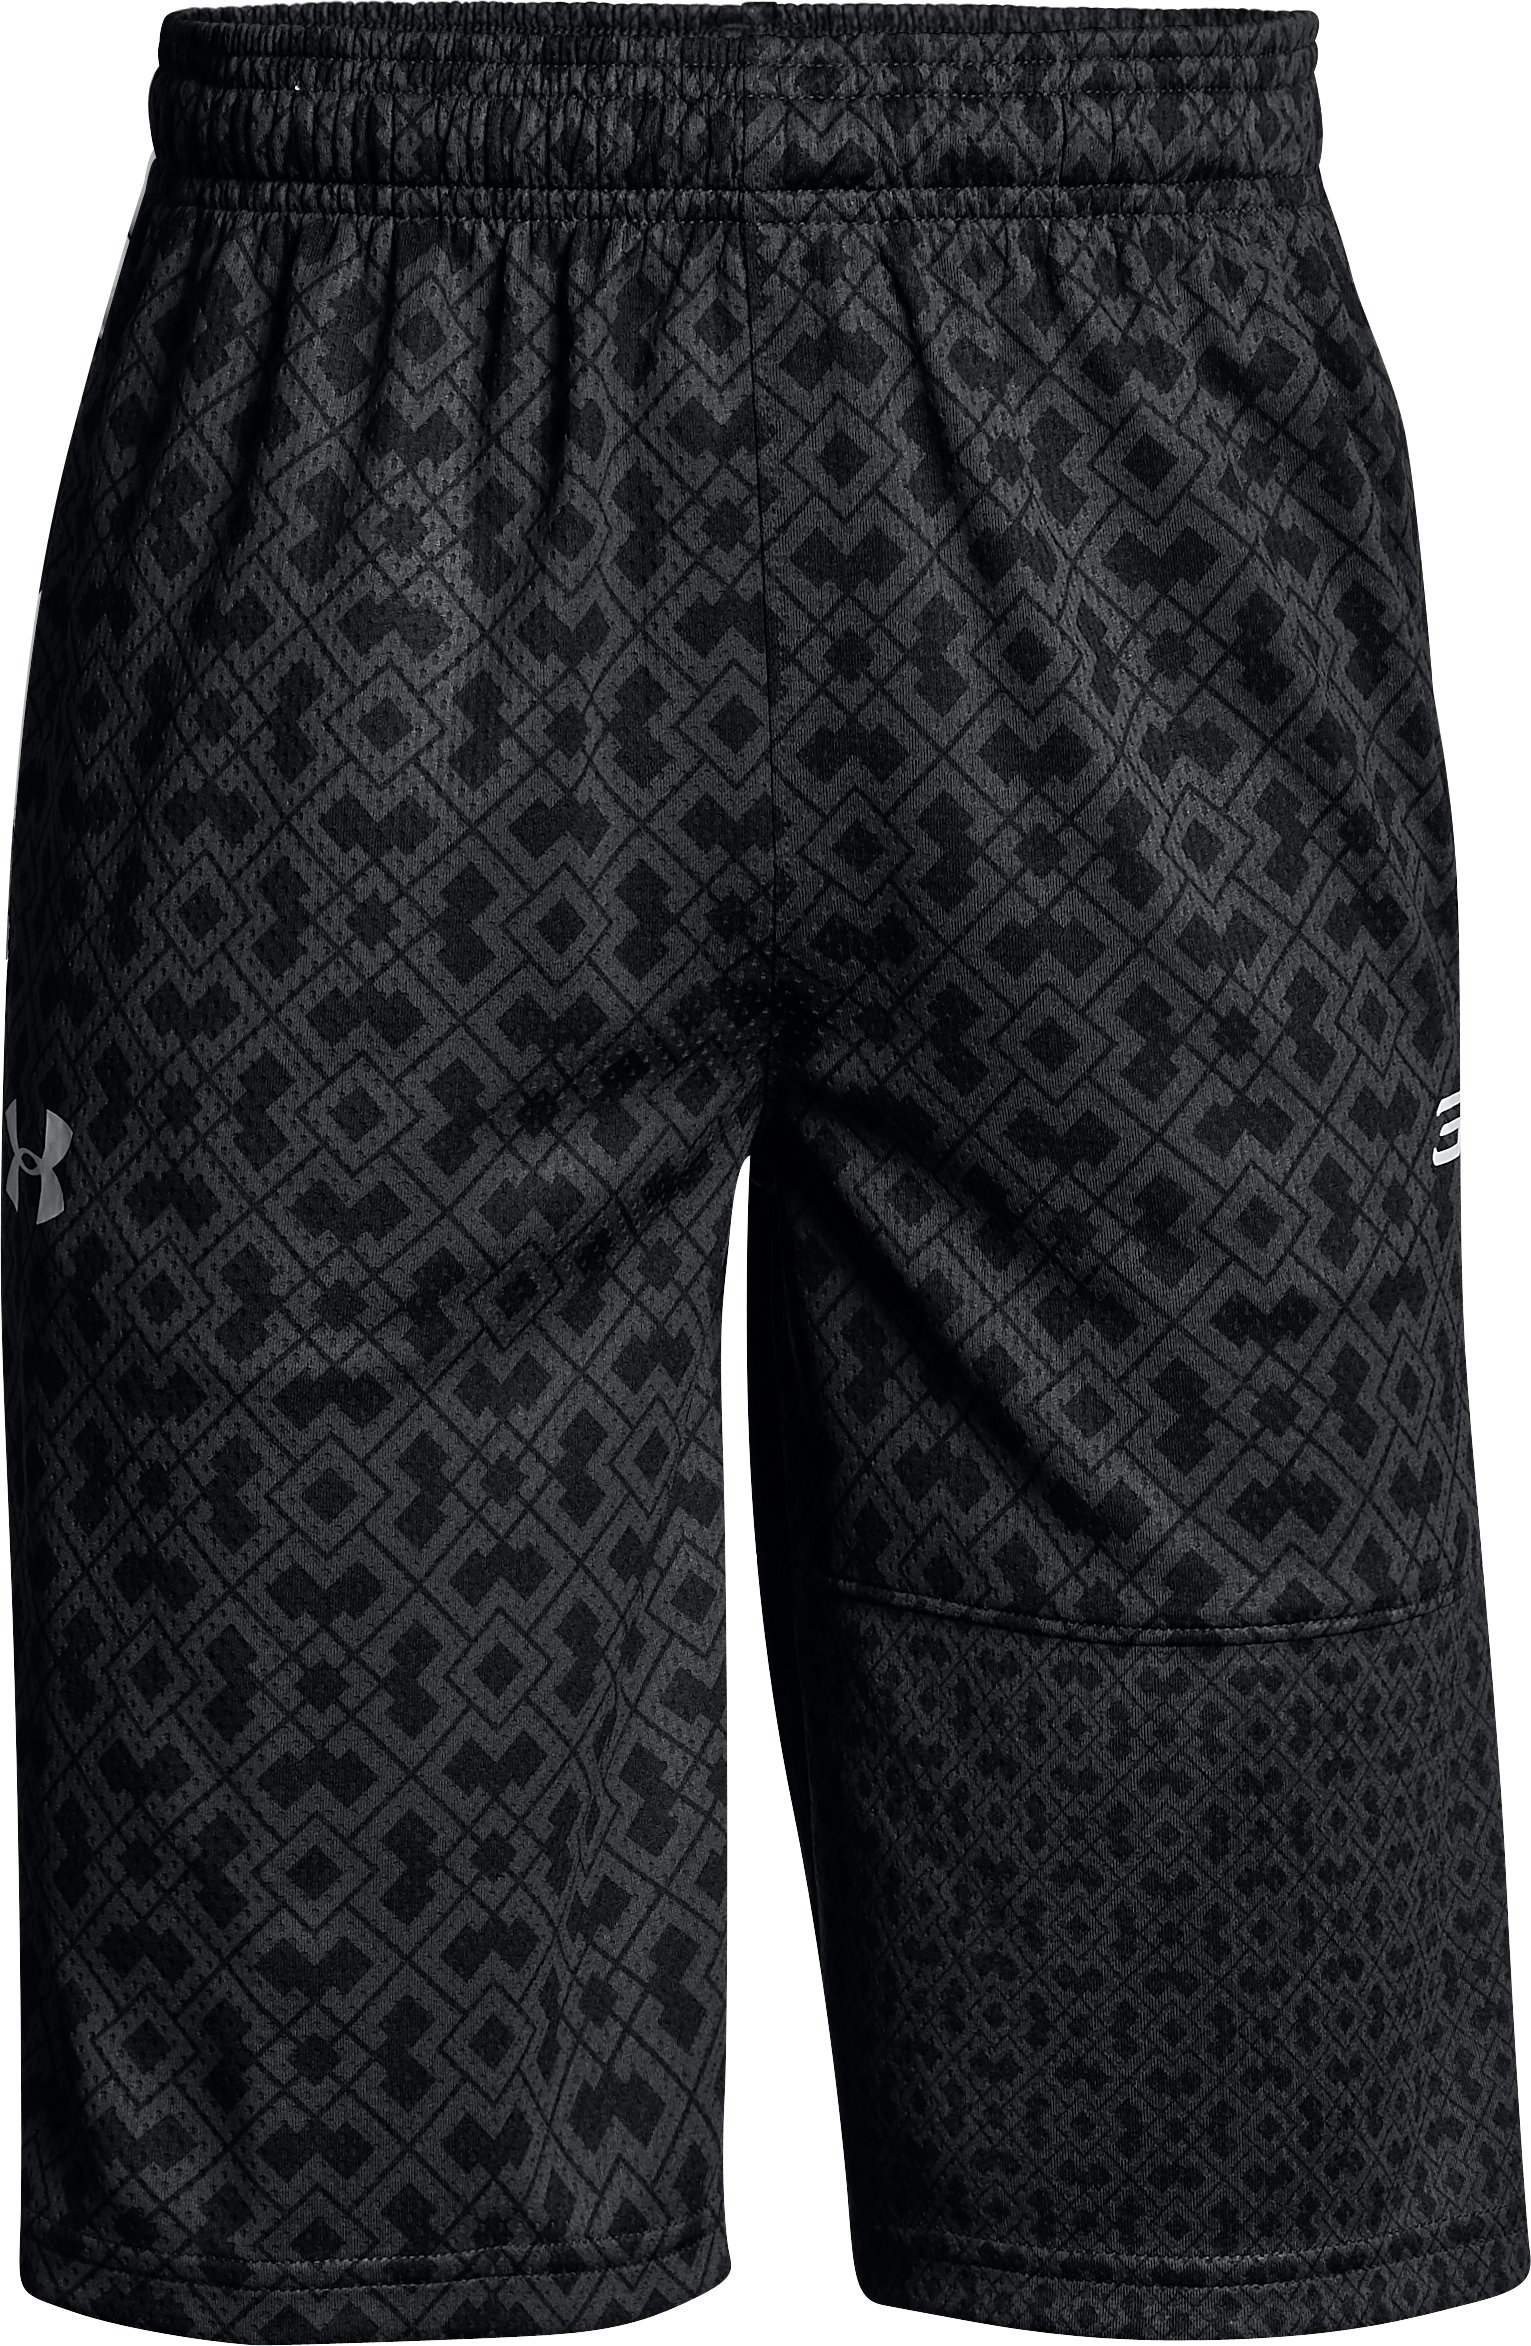 Boys' SC30 Printed Shorts, Black